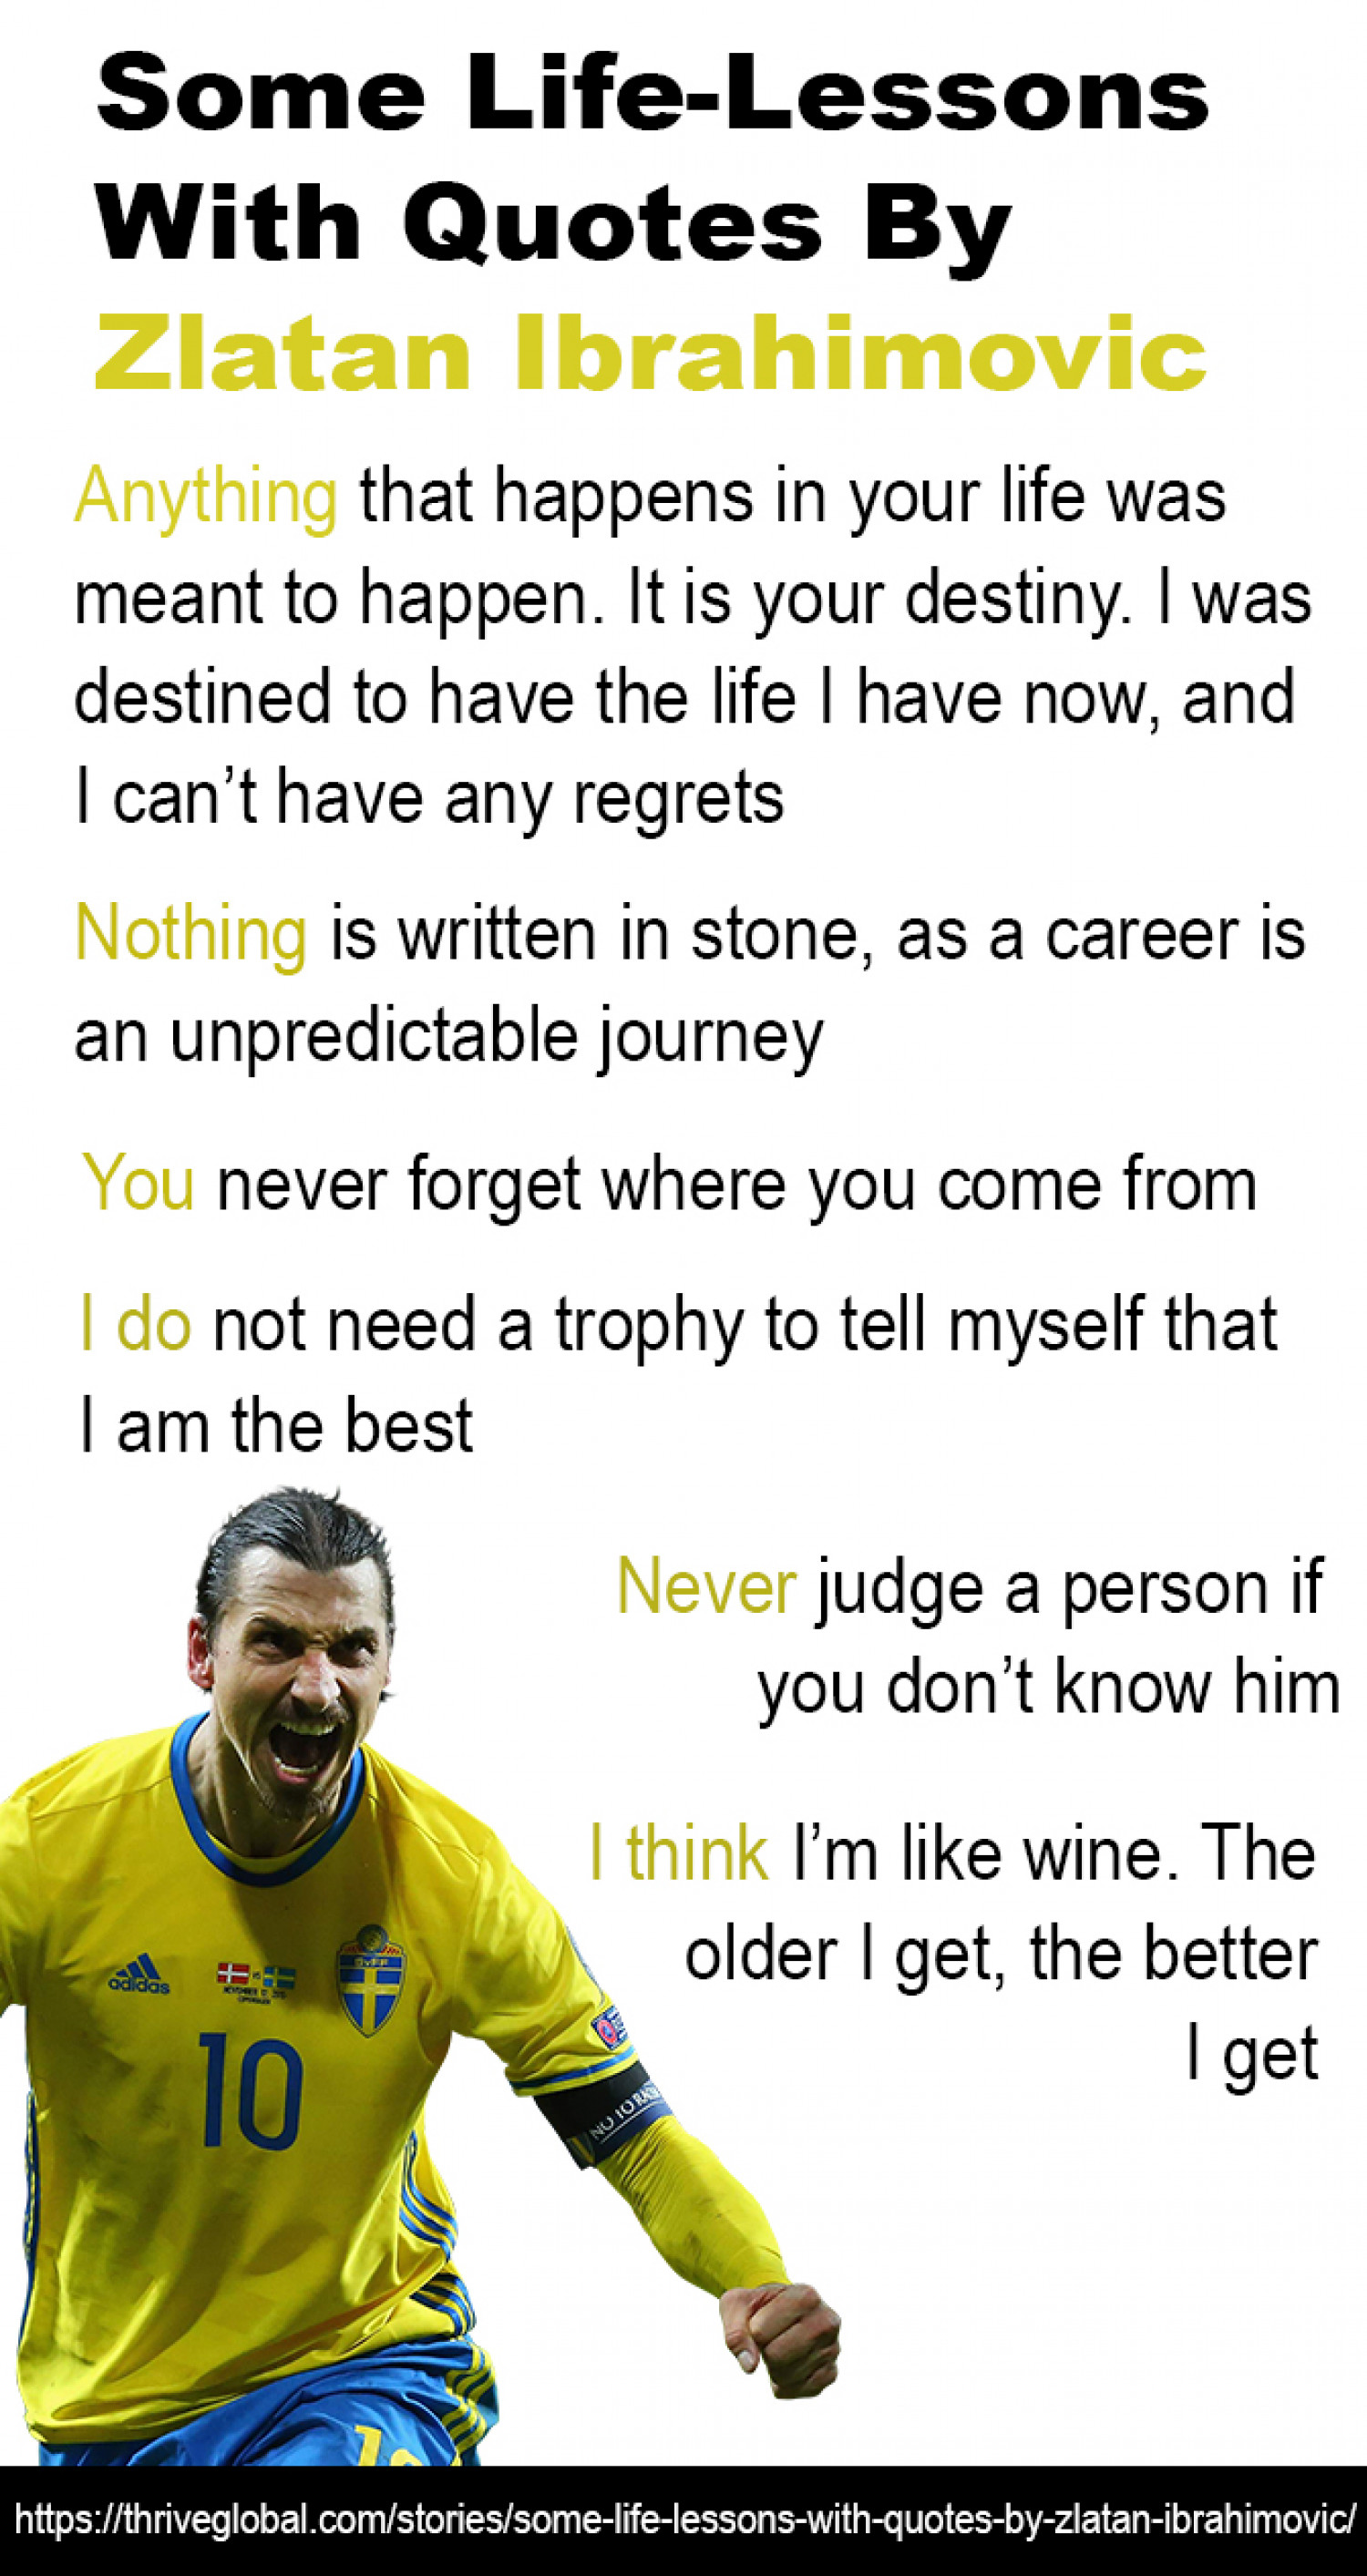 Life Lessons by Zlatan Ibrahimovic inspirational quotes - Kunal Bansal Chandigarh Infographic